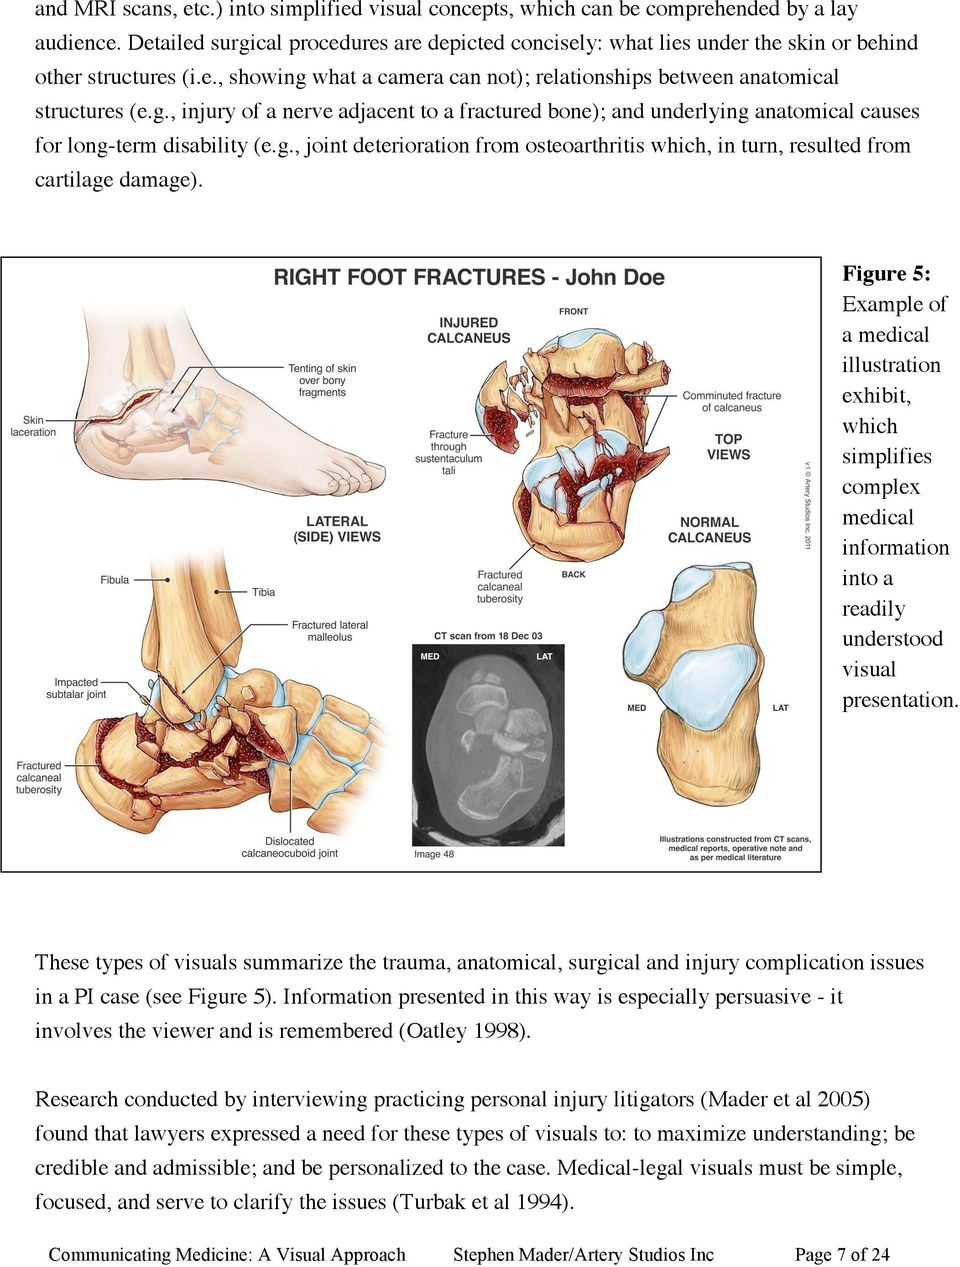 g., joint deterioration from osteoarthritis which, in turn, resulted from cartilage damage).